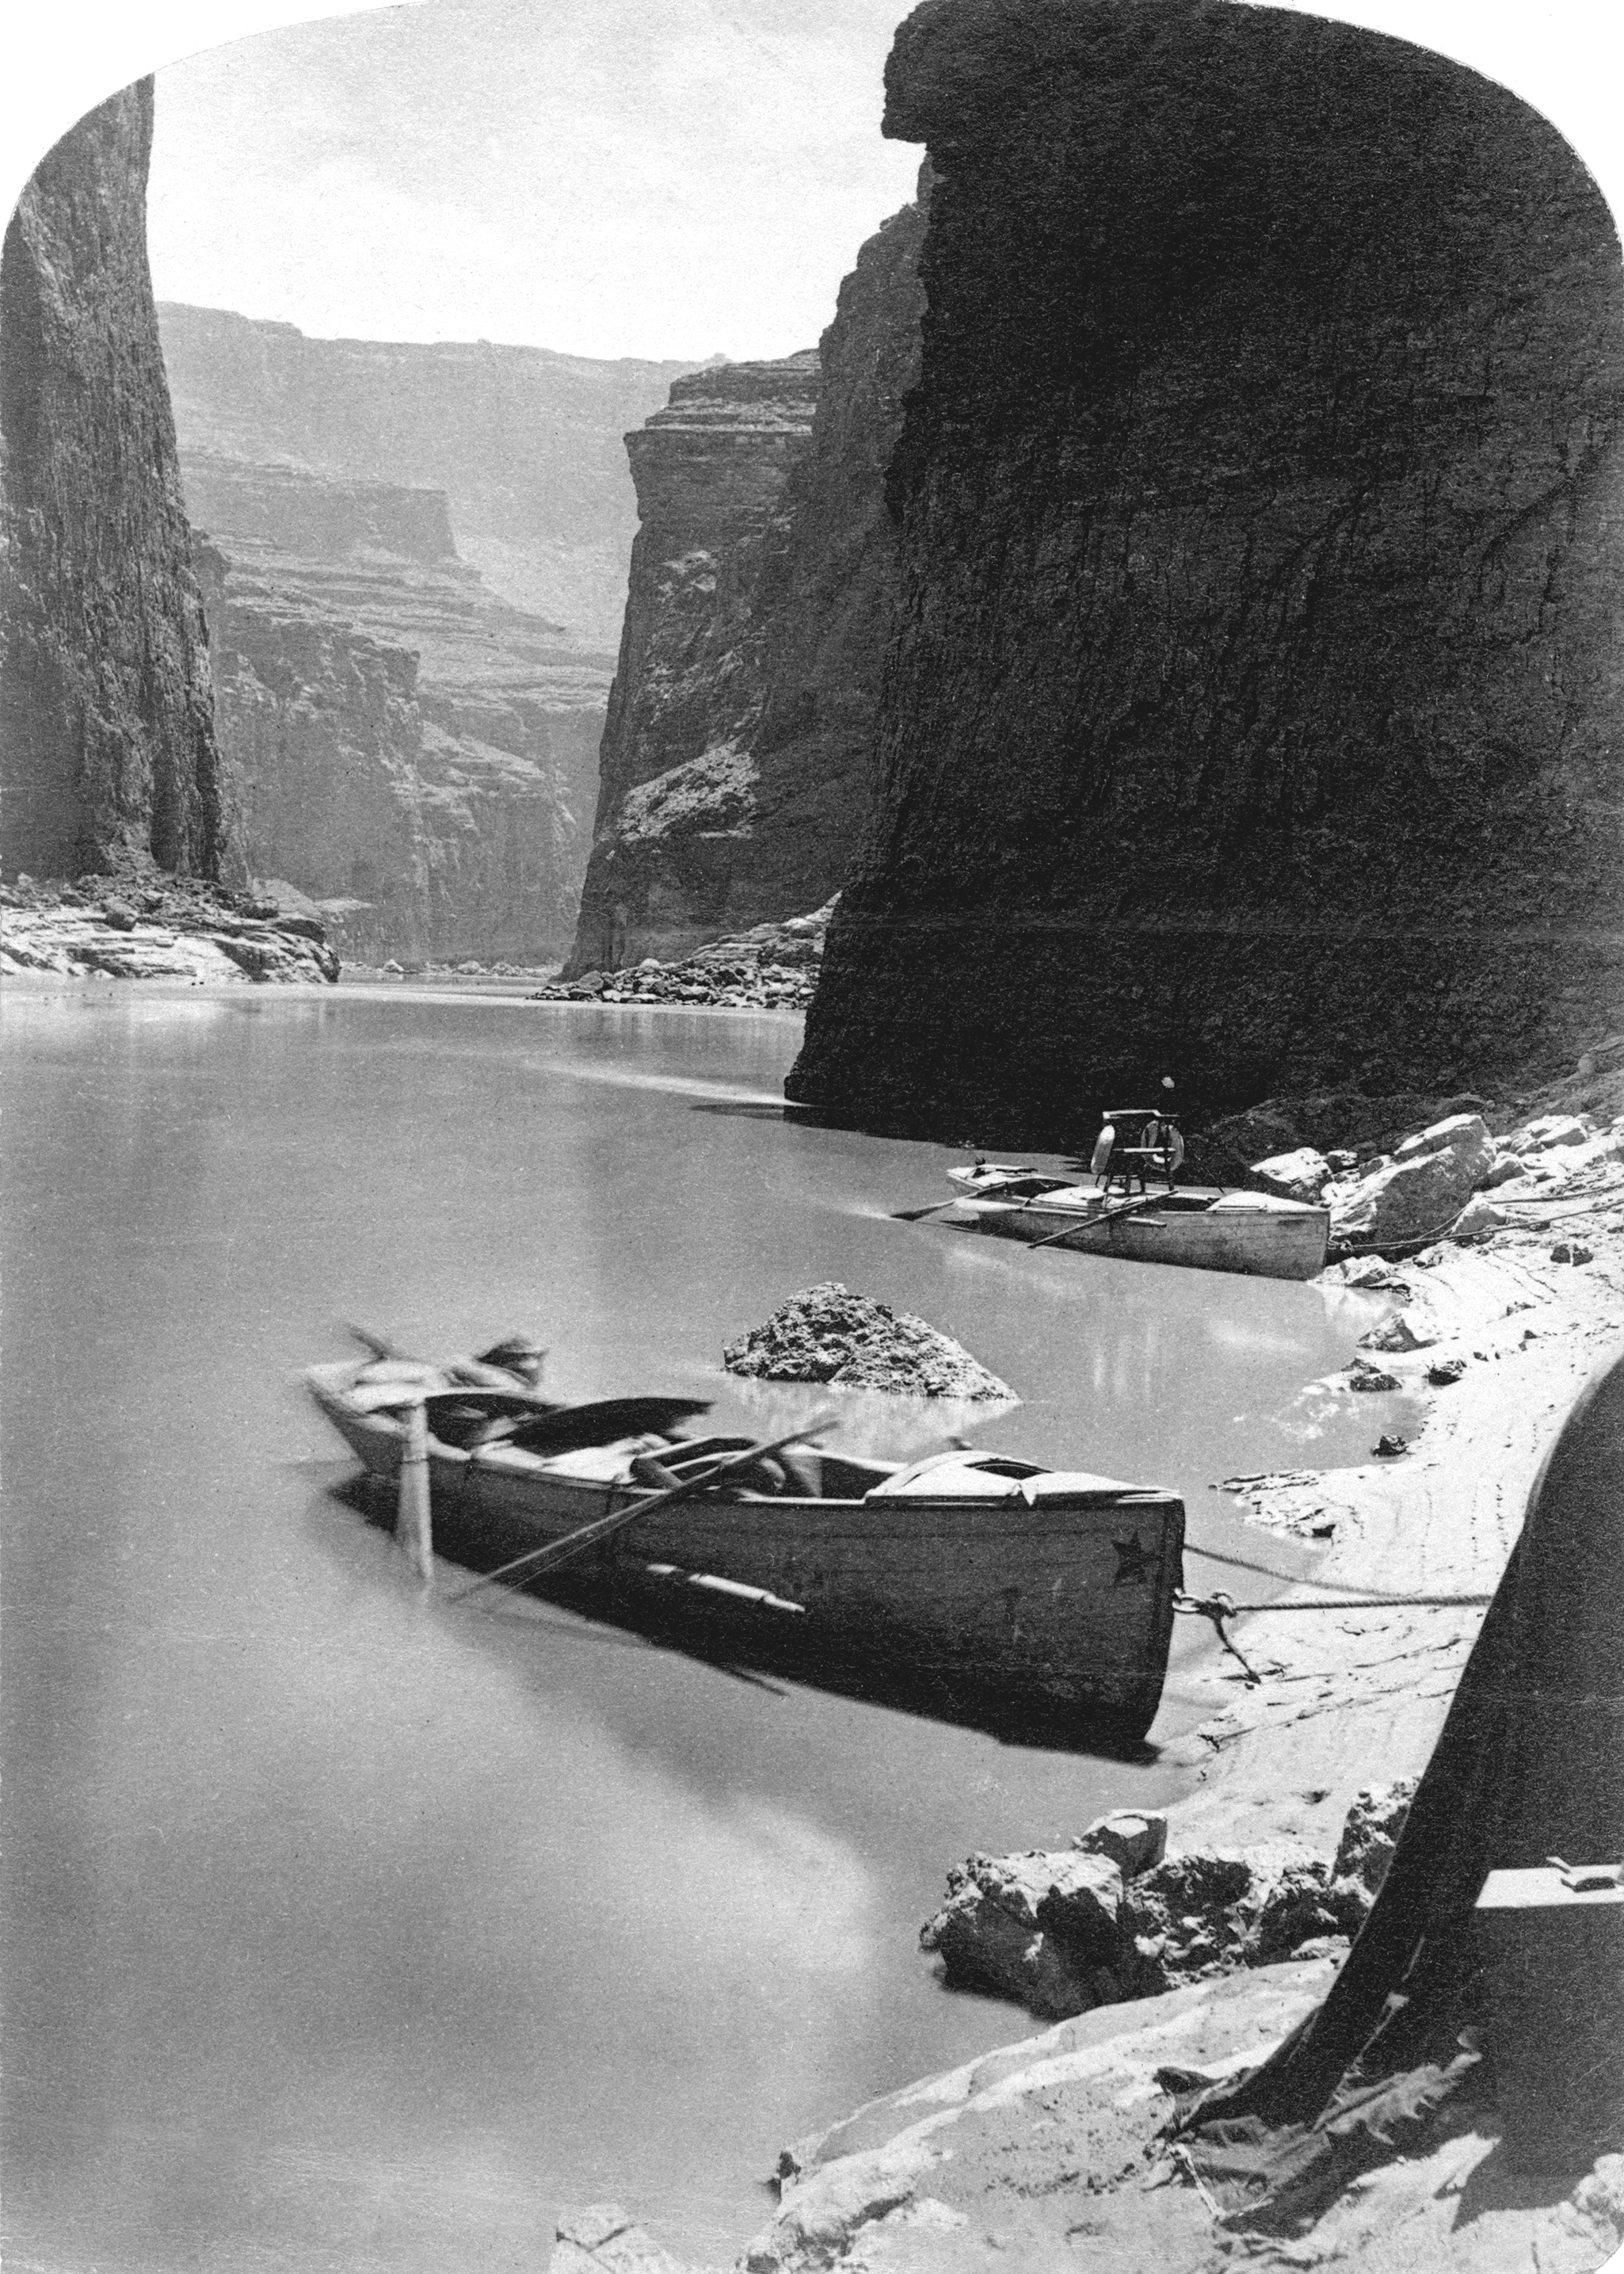 'Noon Day Rest in Marble Canyon' from the second Powell Expedition, circa 1872